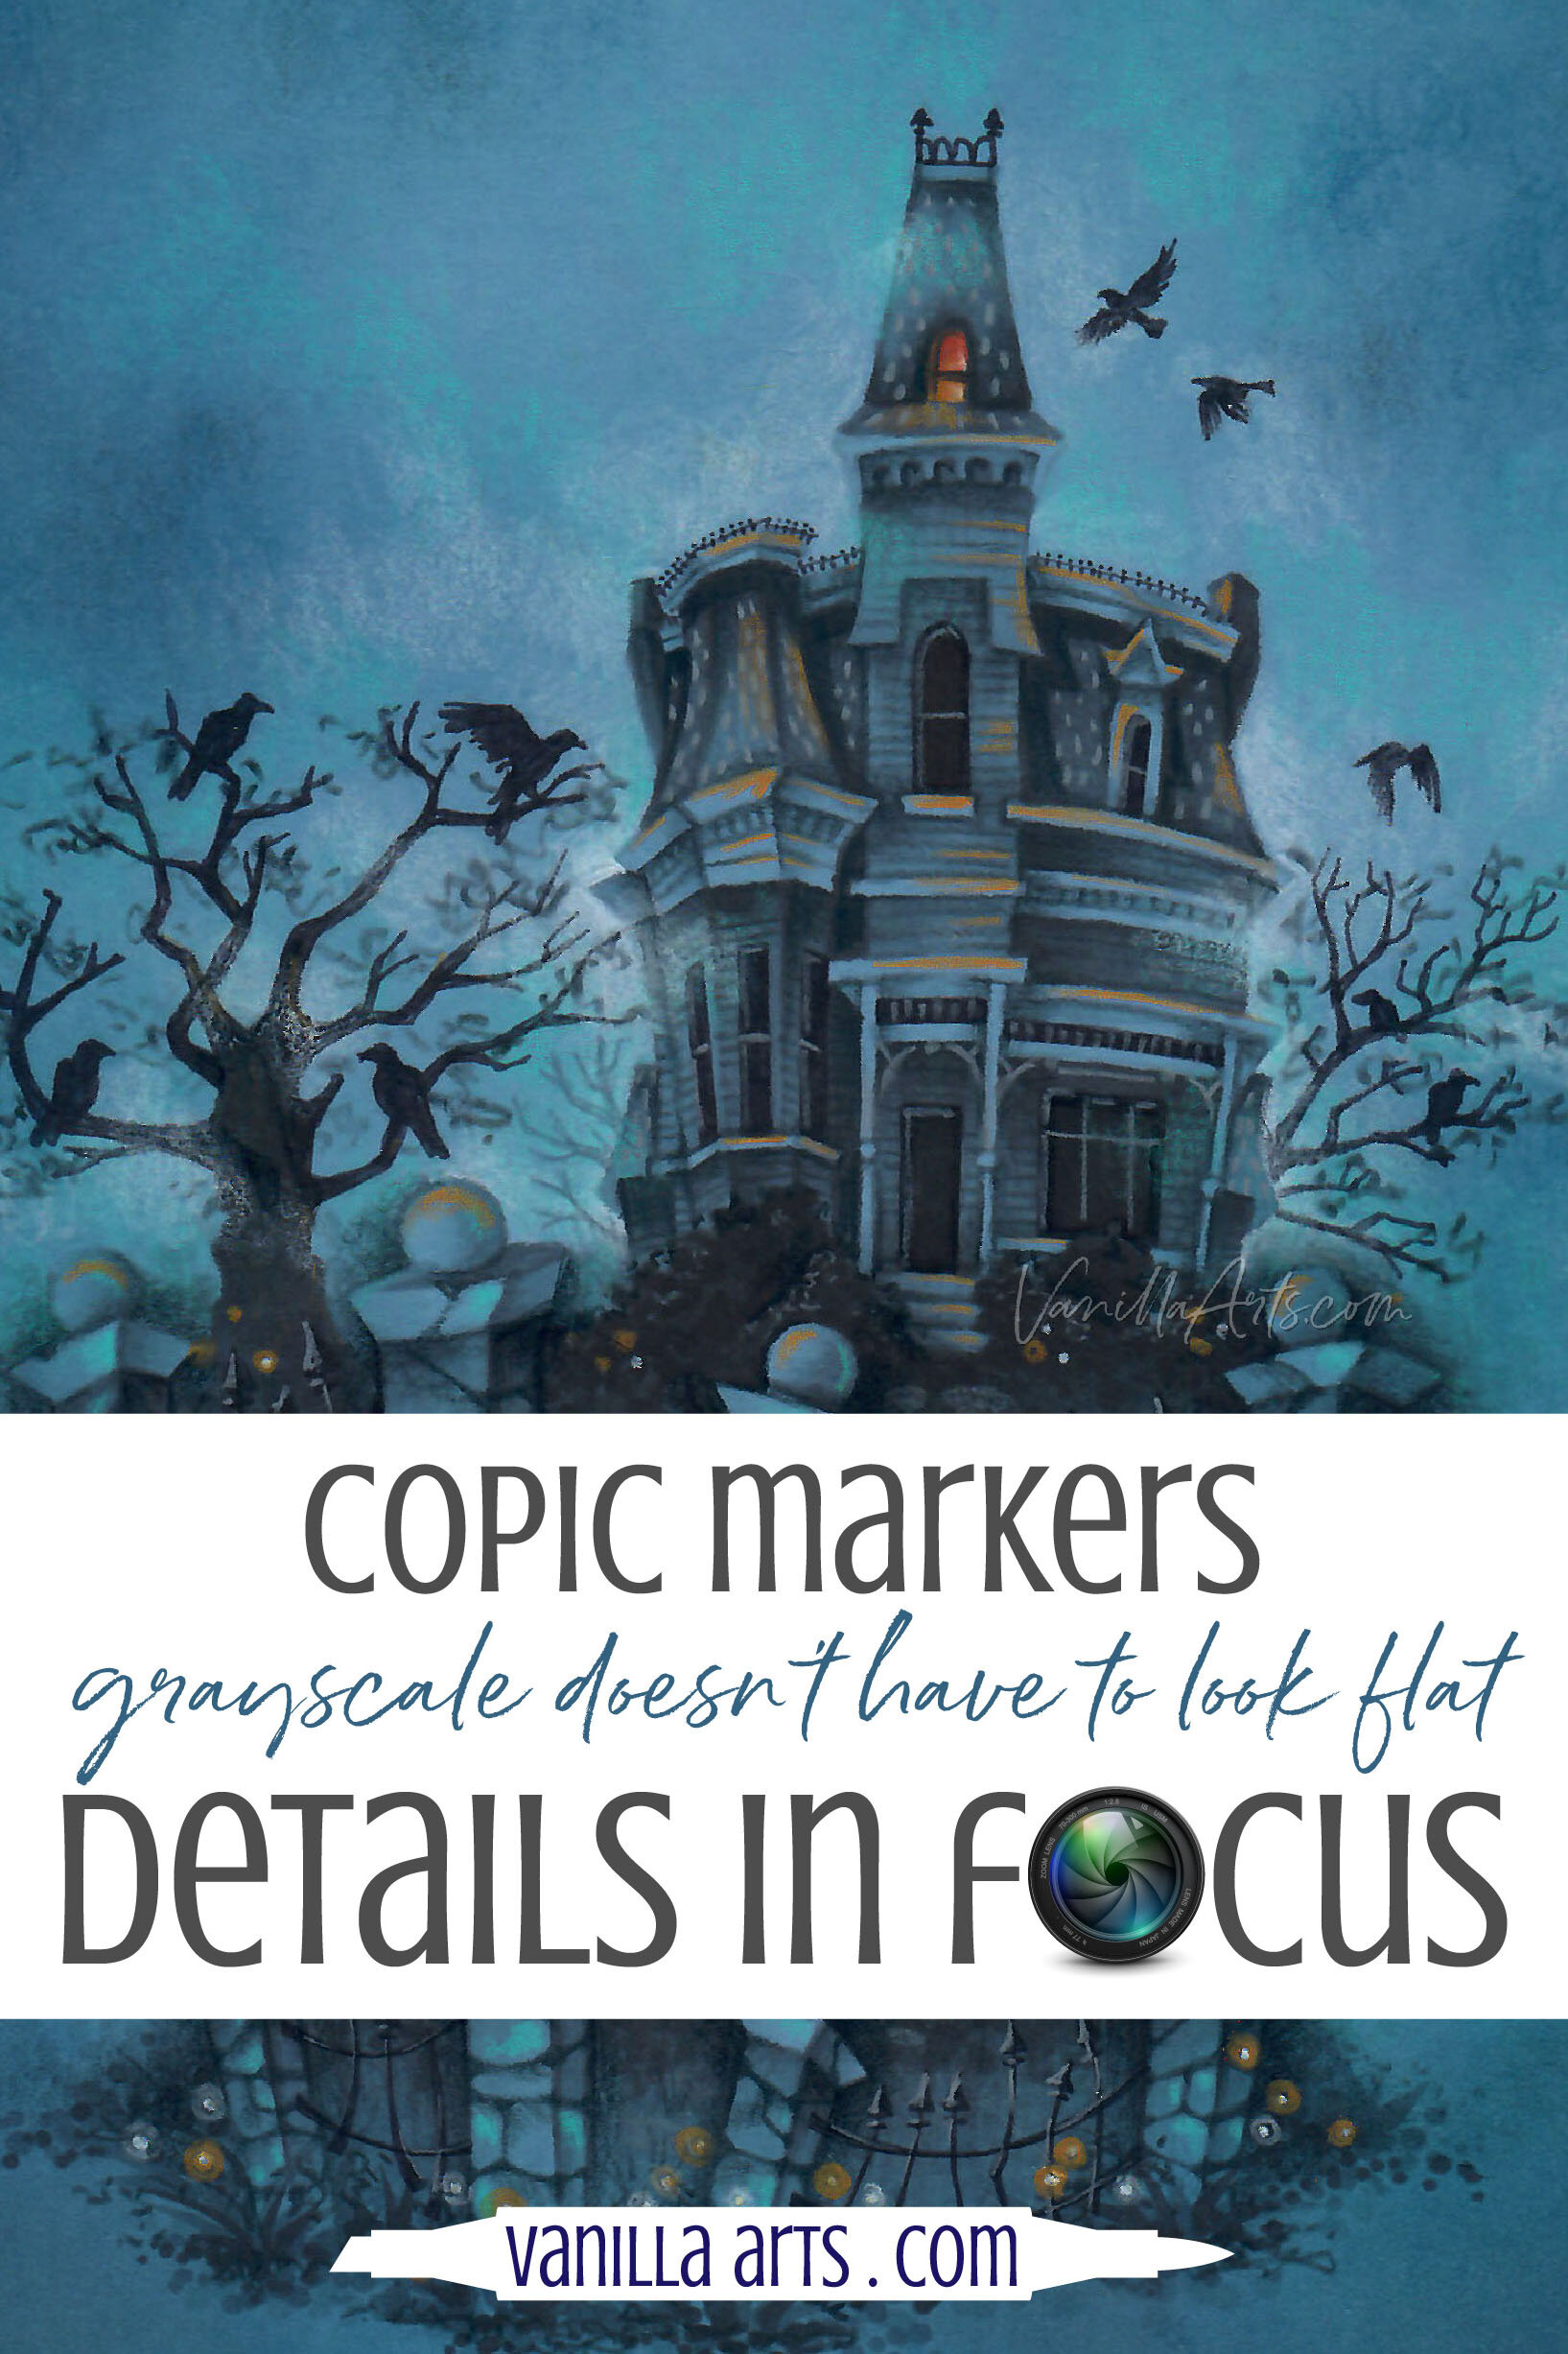 Details In Focus Add Beautiful Color To Gray Copic Marker Projects Plus Paper Recommendations Vanilla Arts Co